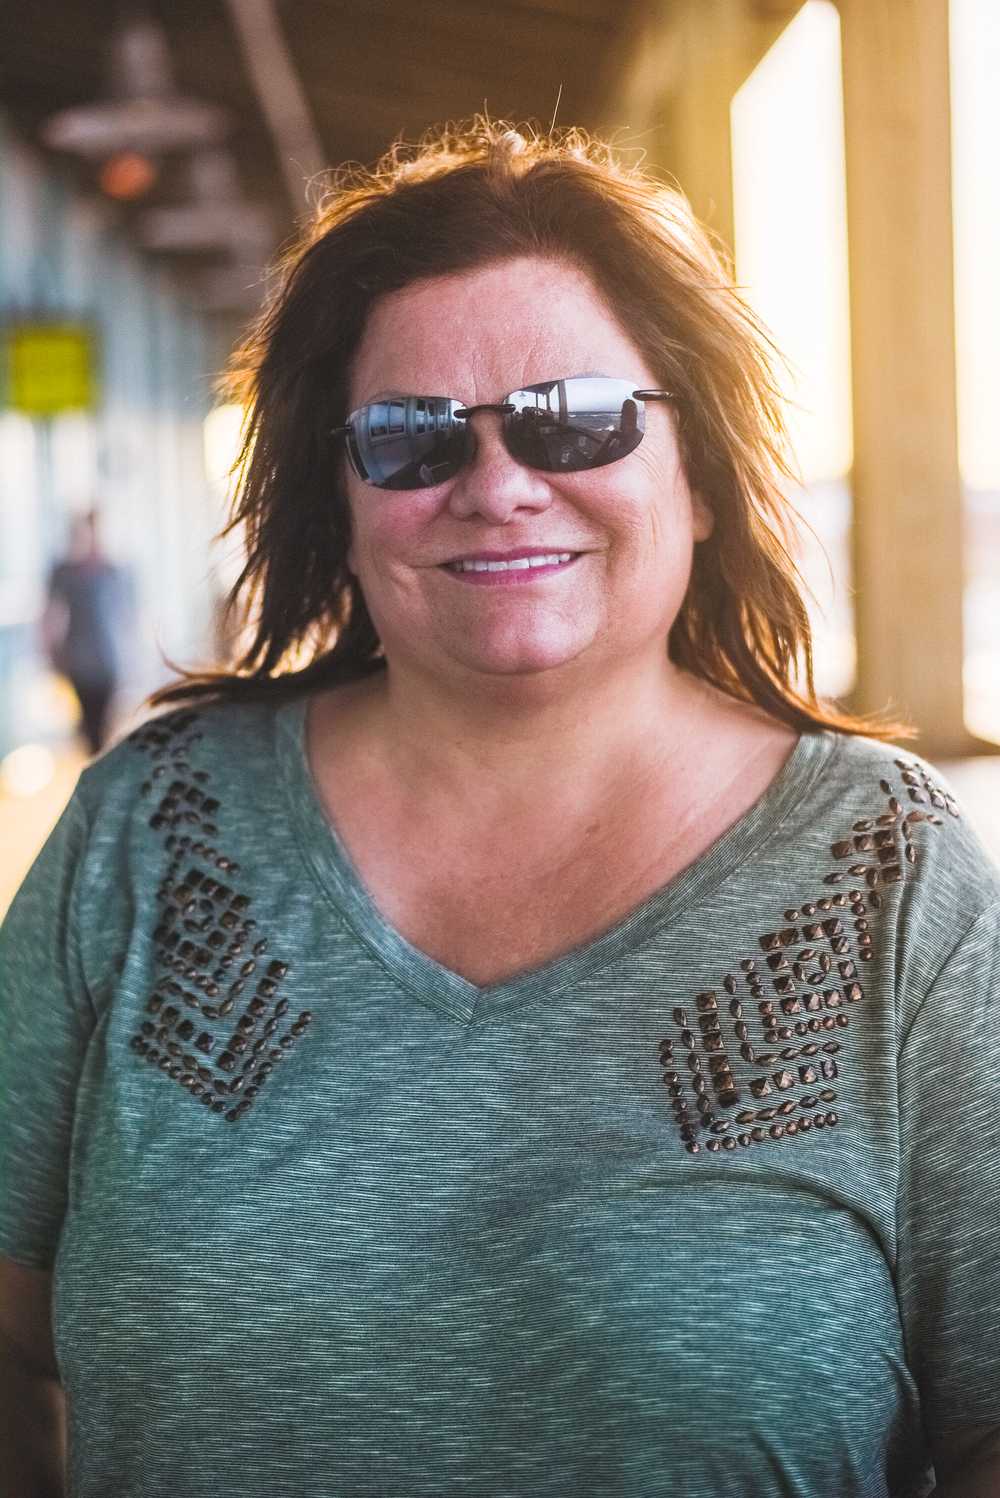 woman wearing sunglasses.jpg